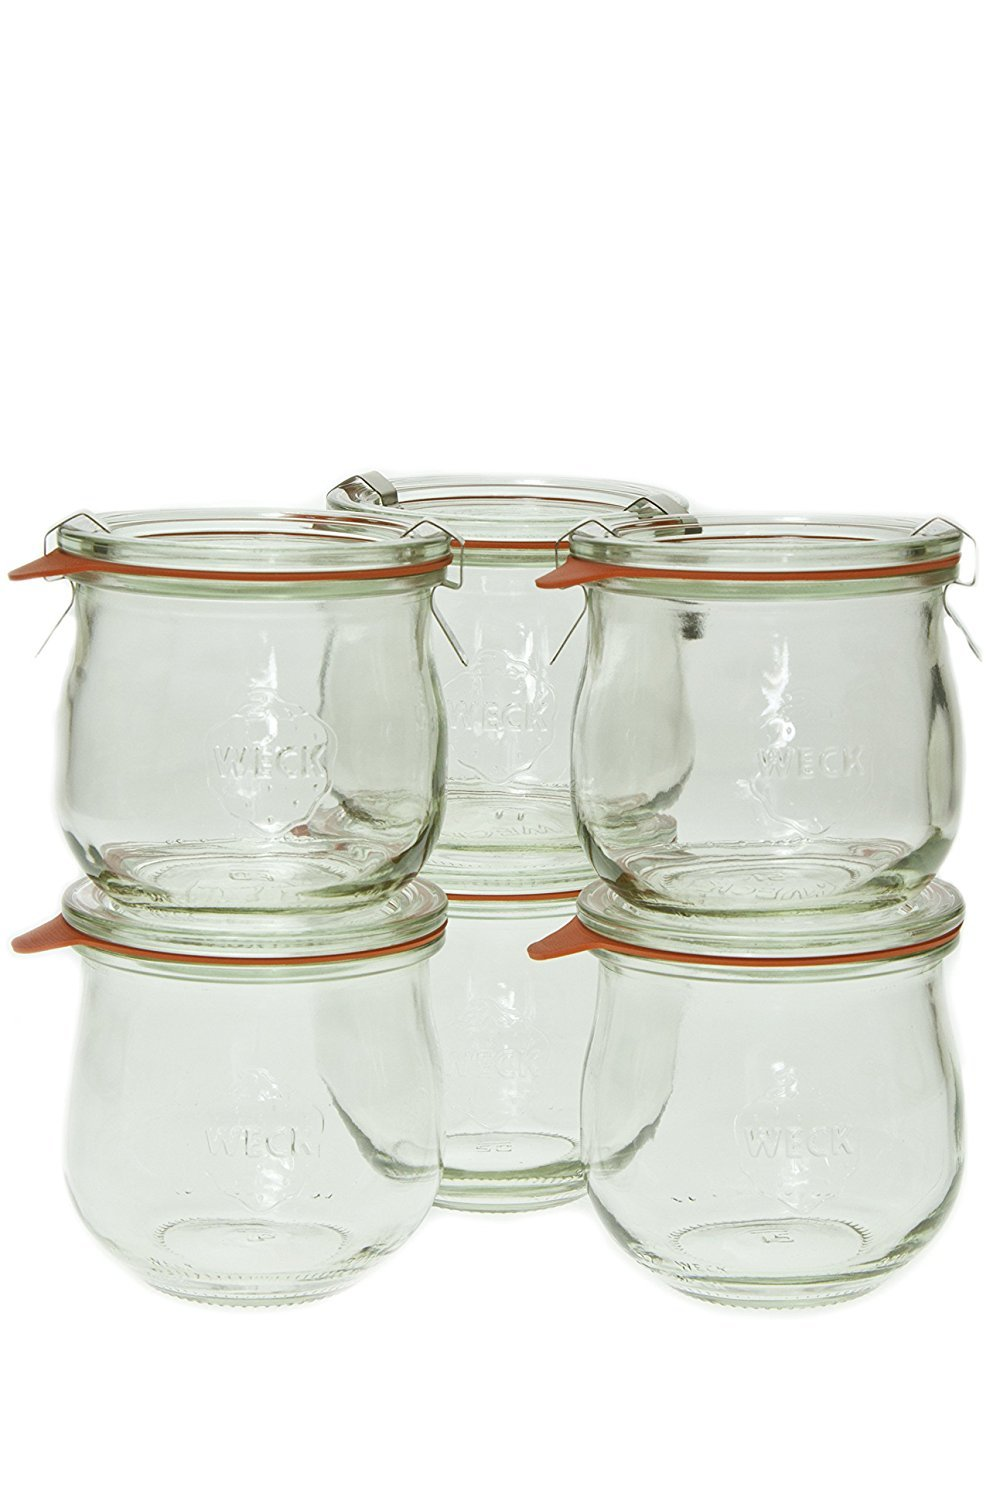 Weck Glass Storage Jars with Lids, Set of 6 (Made in Germany).